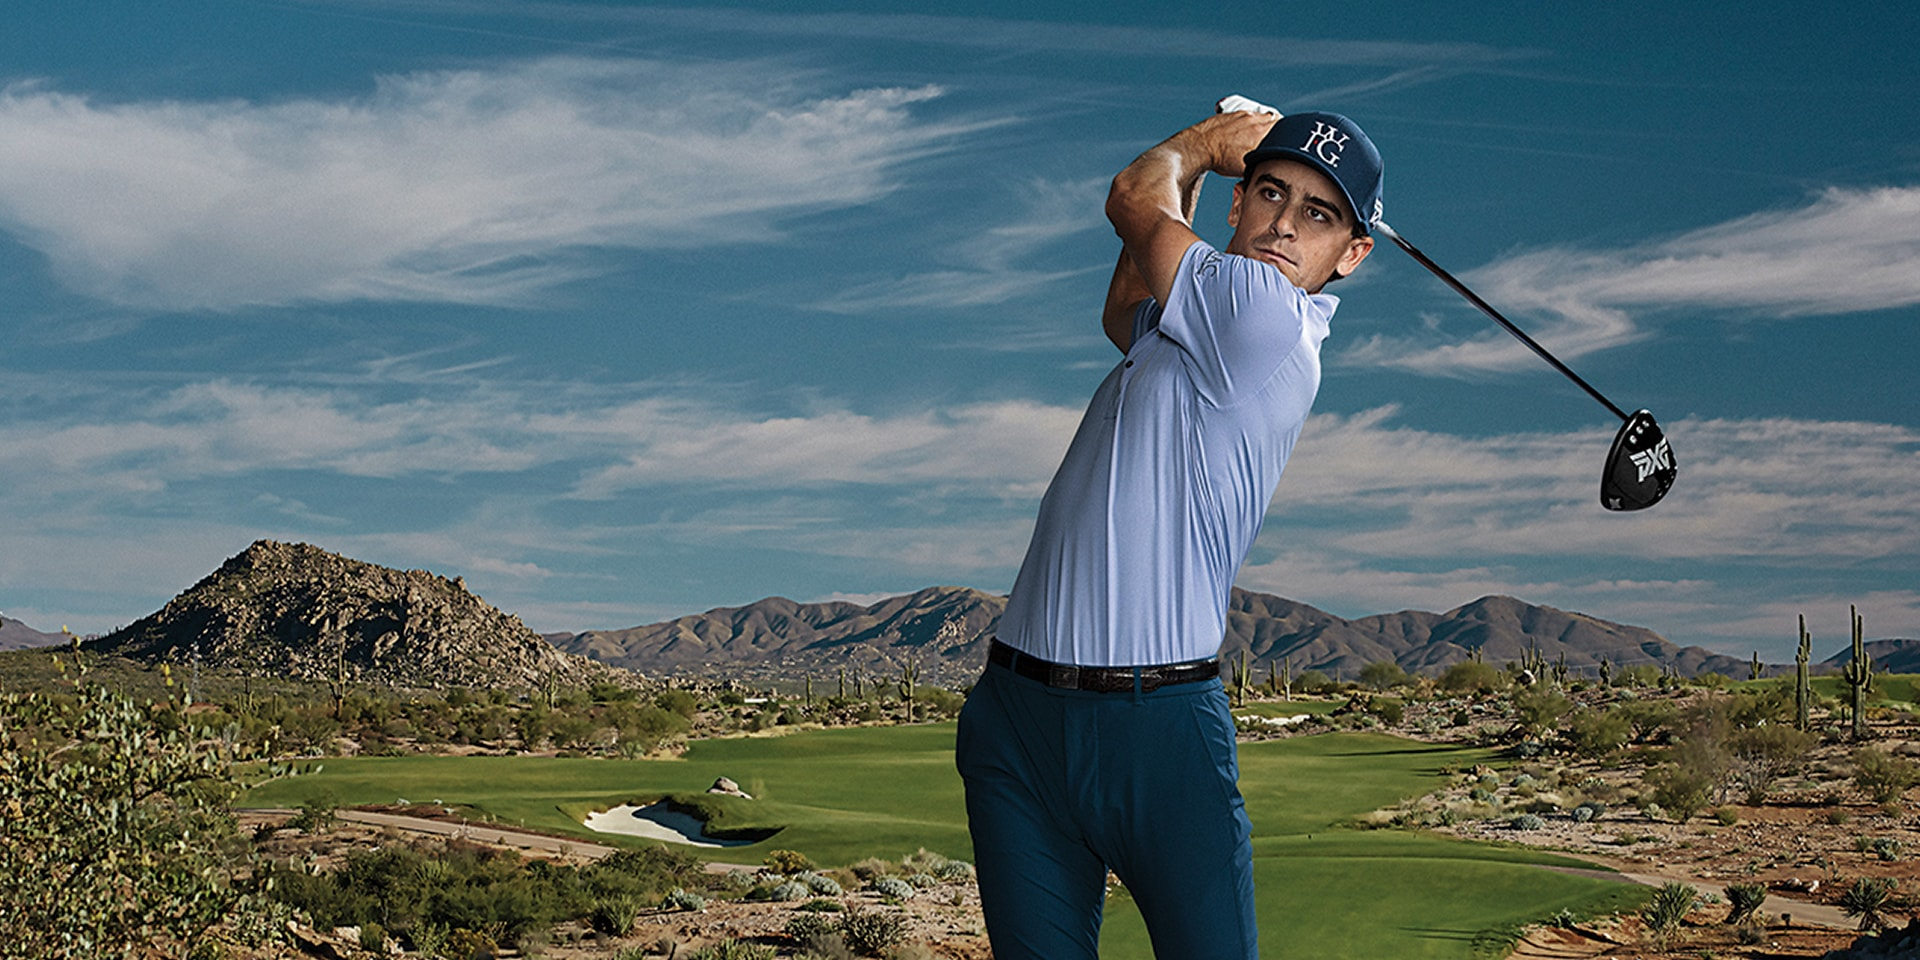 Left handed PGA TOUR Pro Scott Langley teeing off with a GEN2 PXG Driver